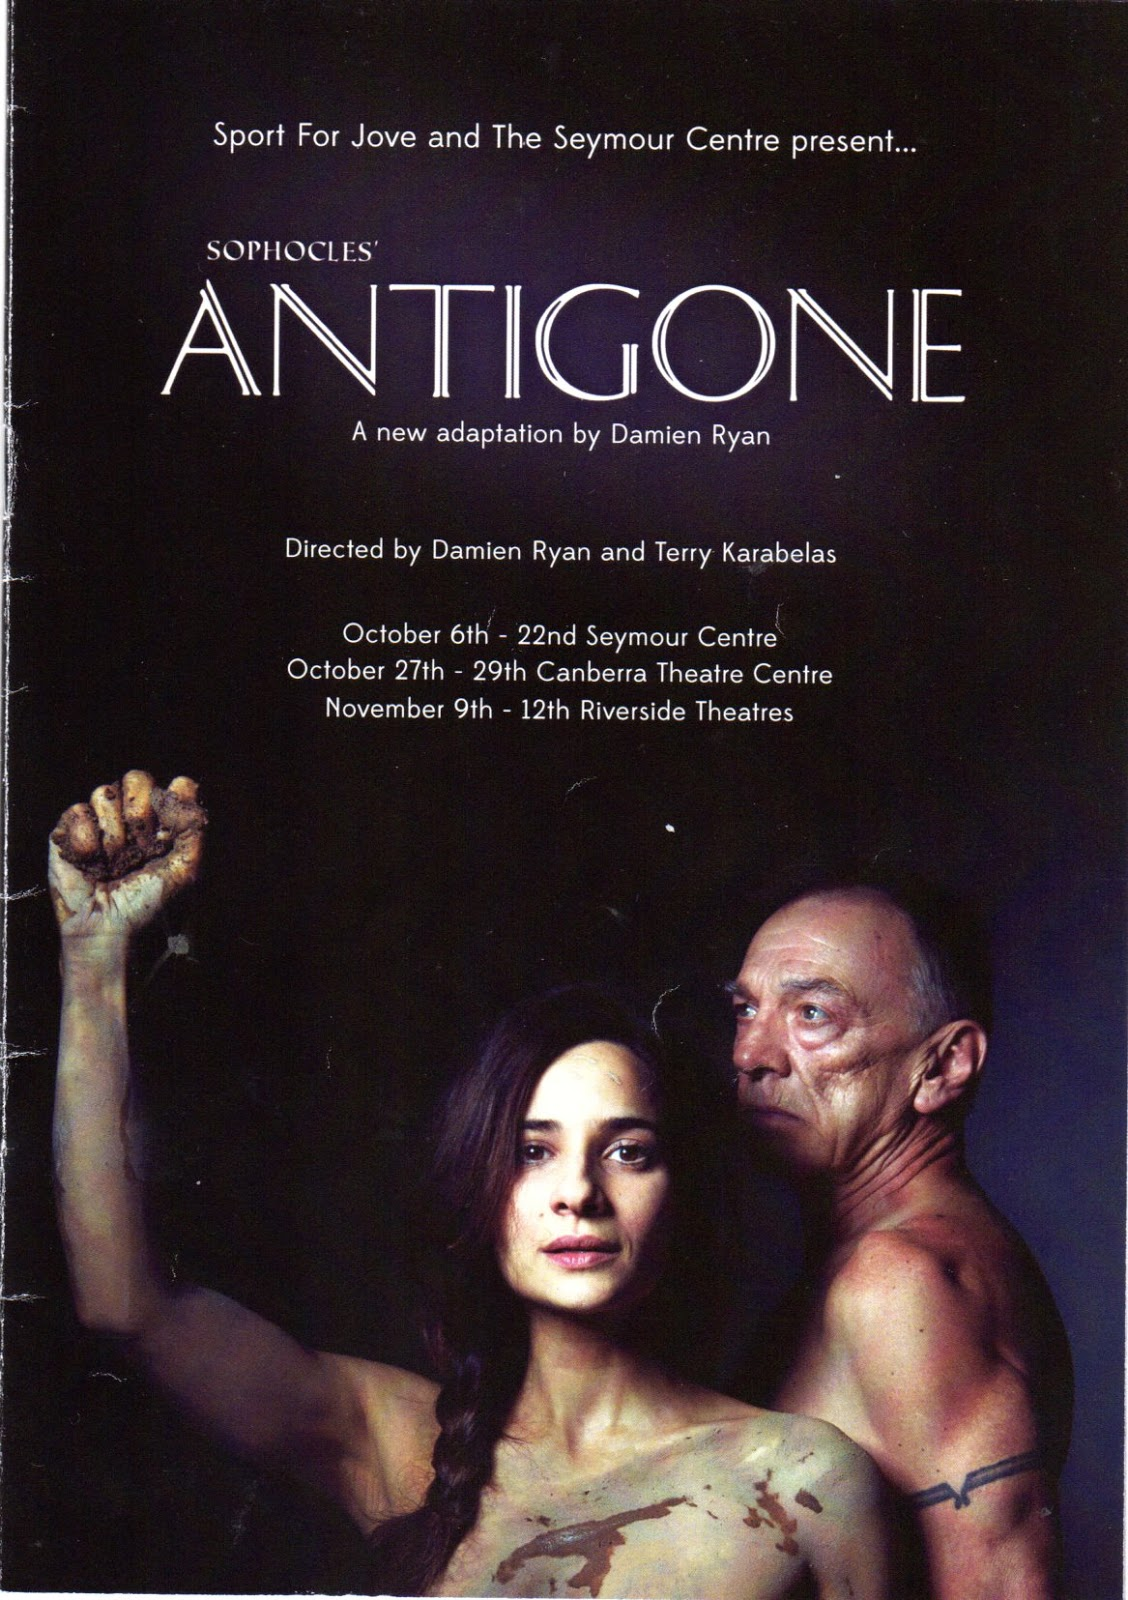 comparison between creon and antigone in oedipus the king essay In the plays oedipus the king and antigone sophocles portrays two characters, oedipus and creon, as rulers of thebes after the murder of laius, former king of thebes, oedipus became leader when he successfully solved the riddle of the sphinx.